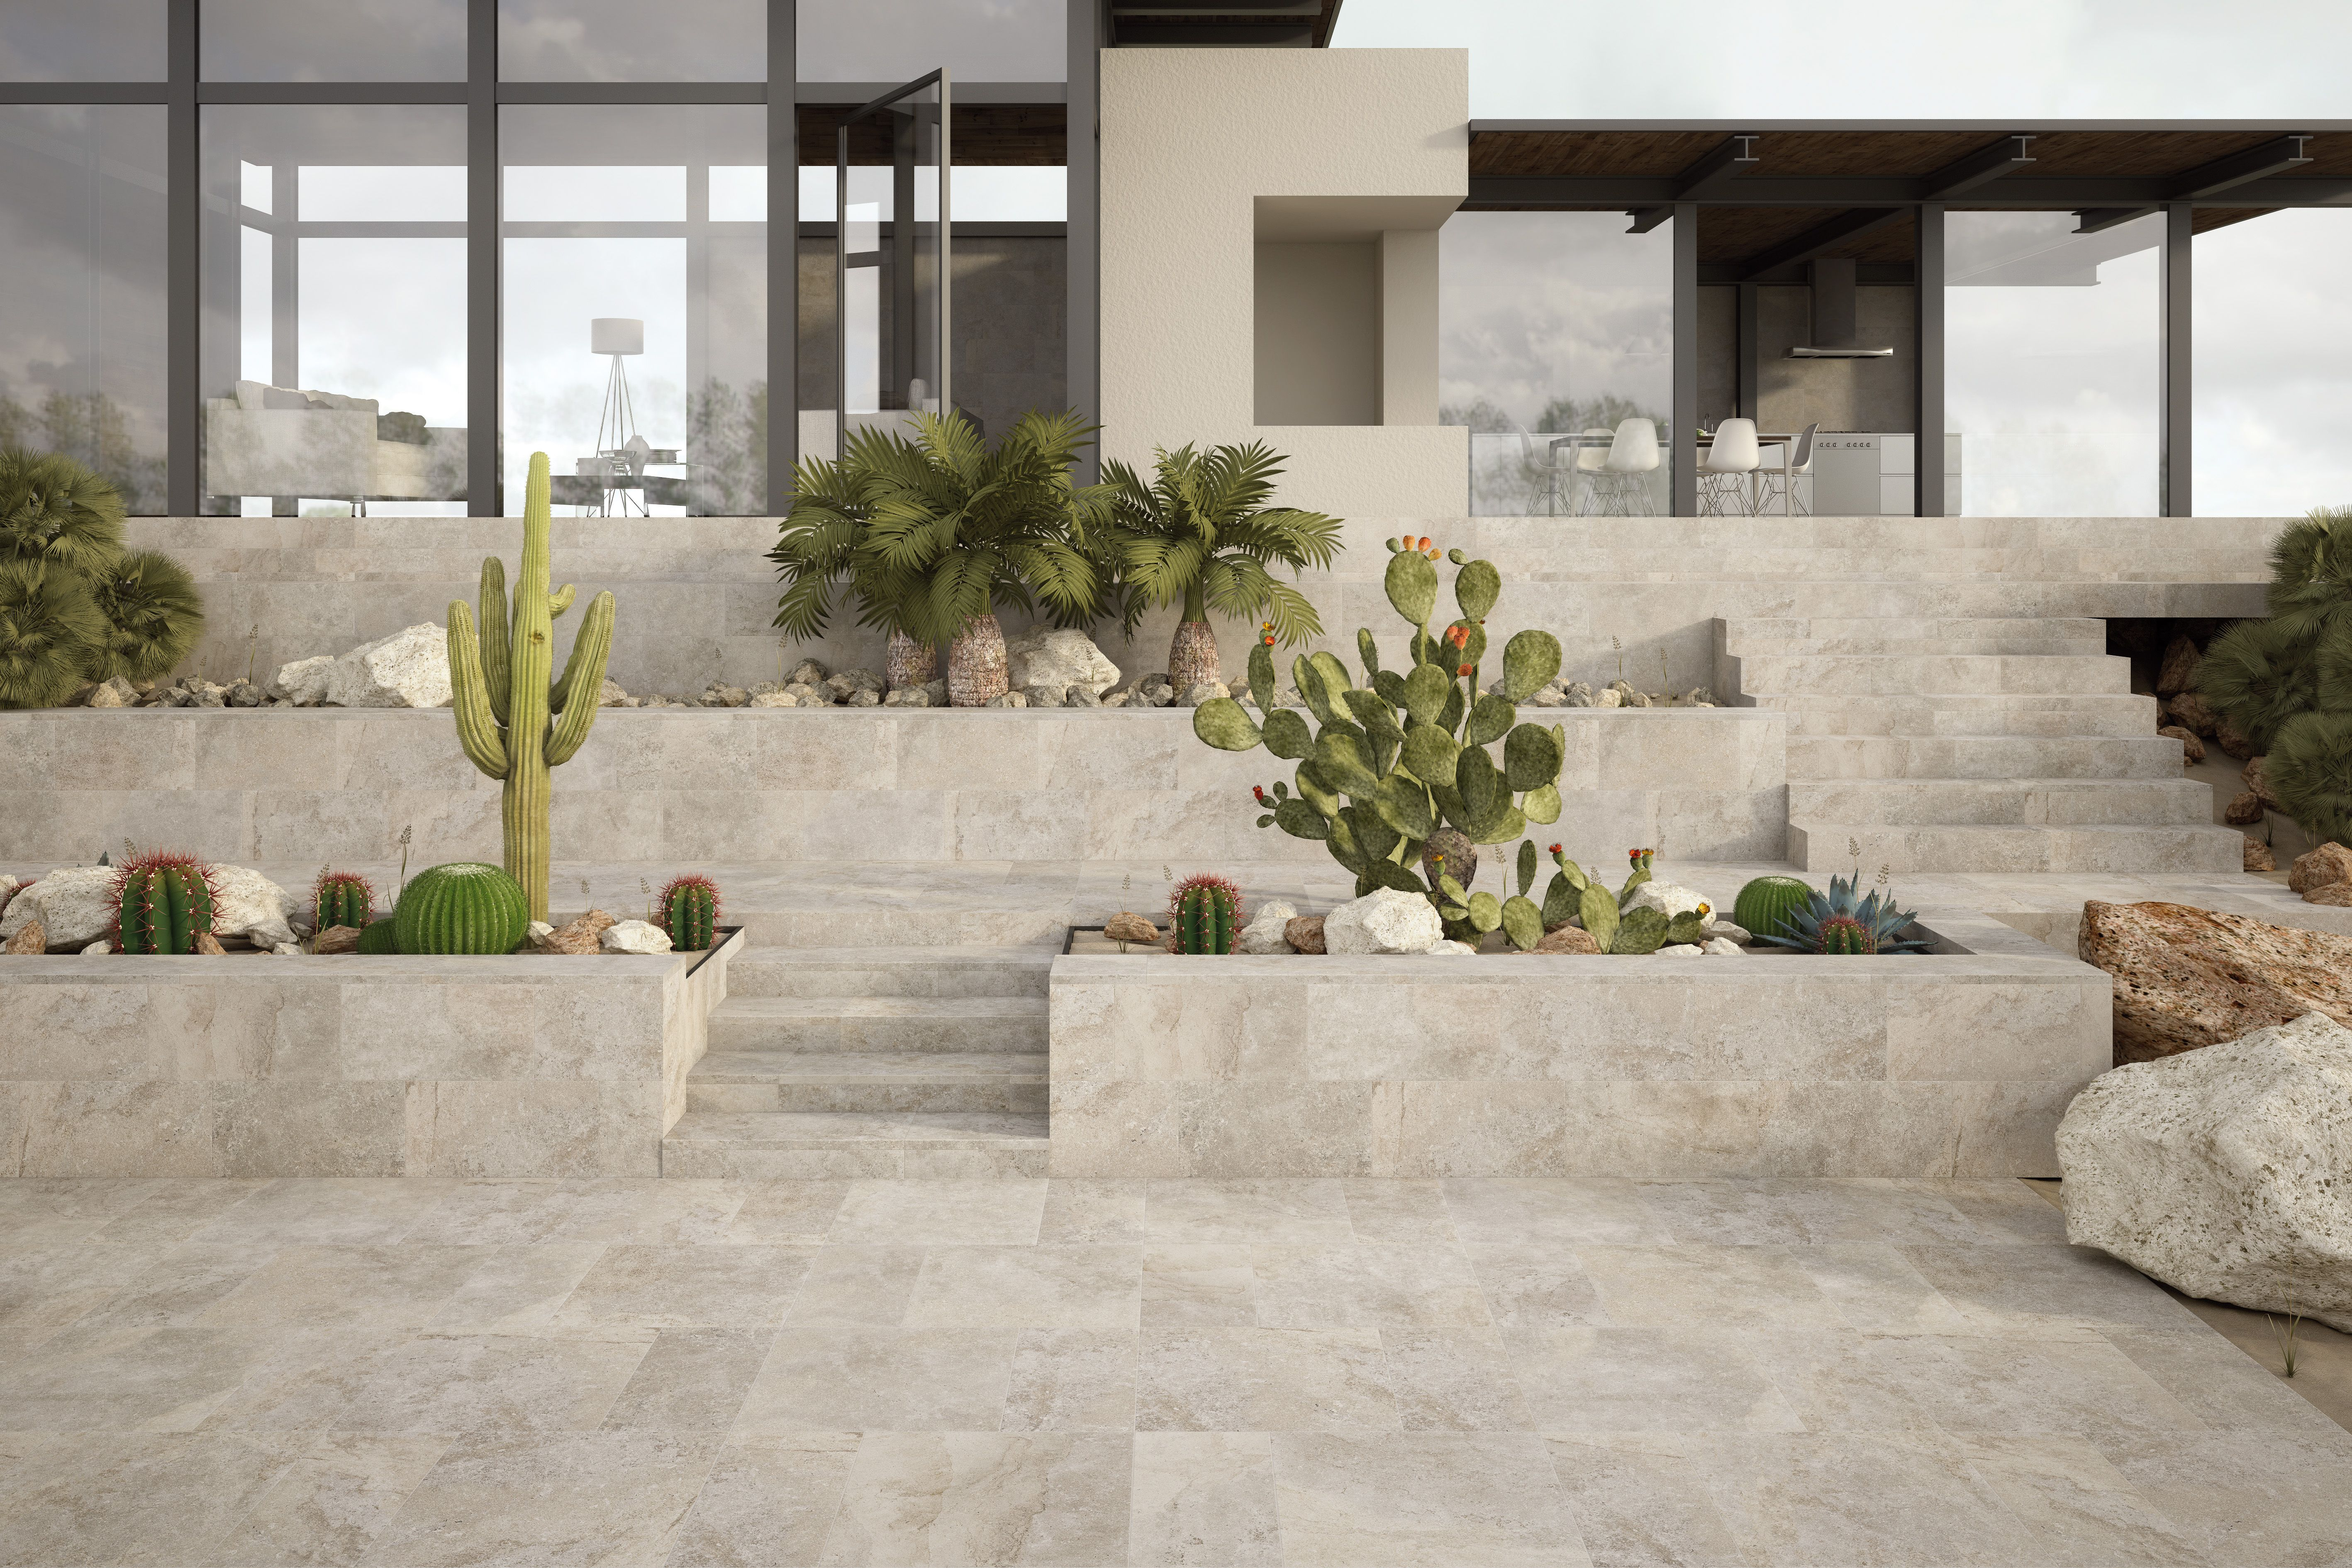 Sassuolo Stone Universe Exterior Porcelain Tile Even The Planters And Treads Are Porcelain Tile Wow Outdoor Flooring Outdoor Stone Exterior Tiles